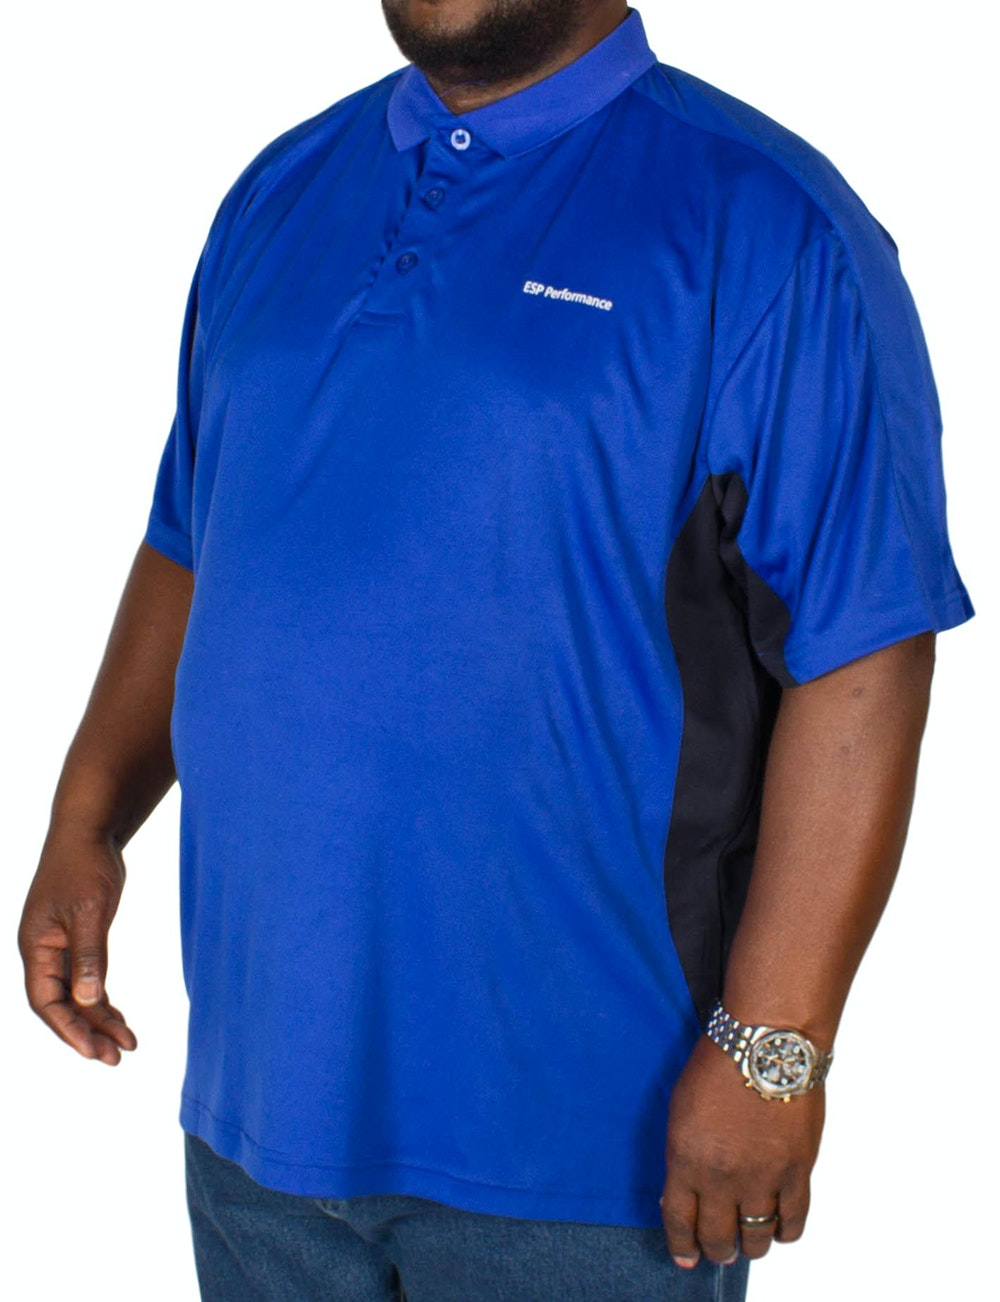 Espionage Performance Polo Shirt Royal